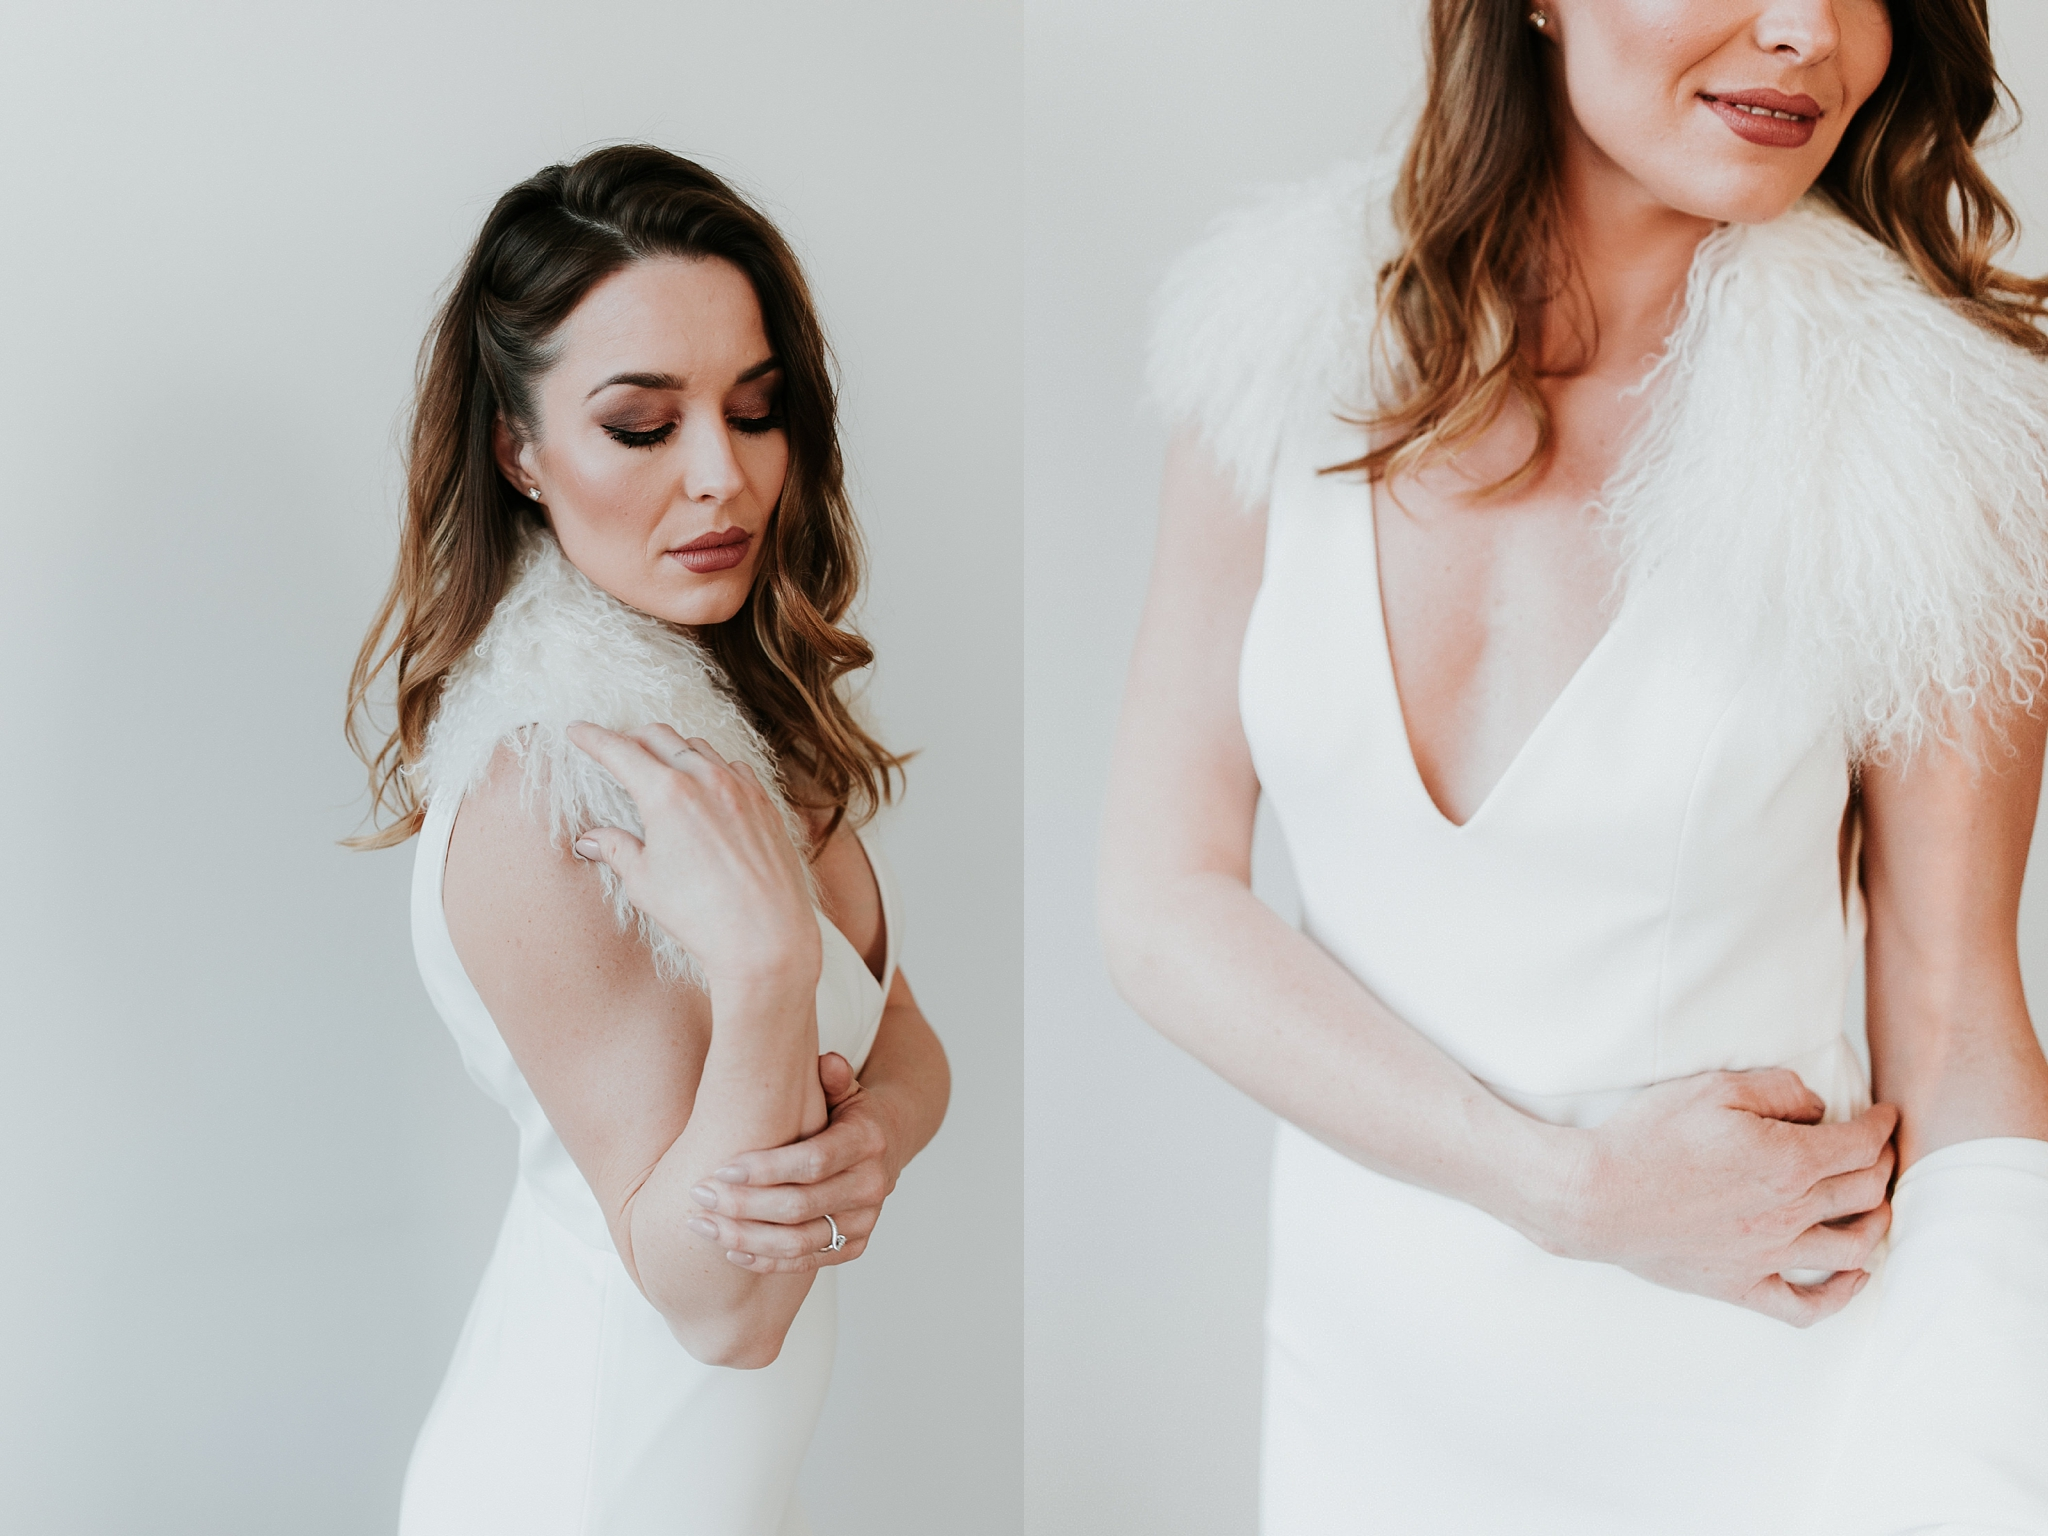 Alicia+lucia+photography+-+albuquerque+wedding+photographer+-+santa+fe+wedding+photography+-+new+mexico+wedding+photographer+-+bridal+shoot+-+styled+bridal+shoot+-+southwest+bride_0002.jpg